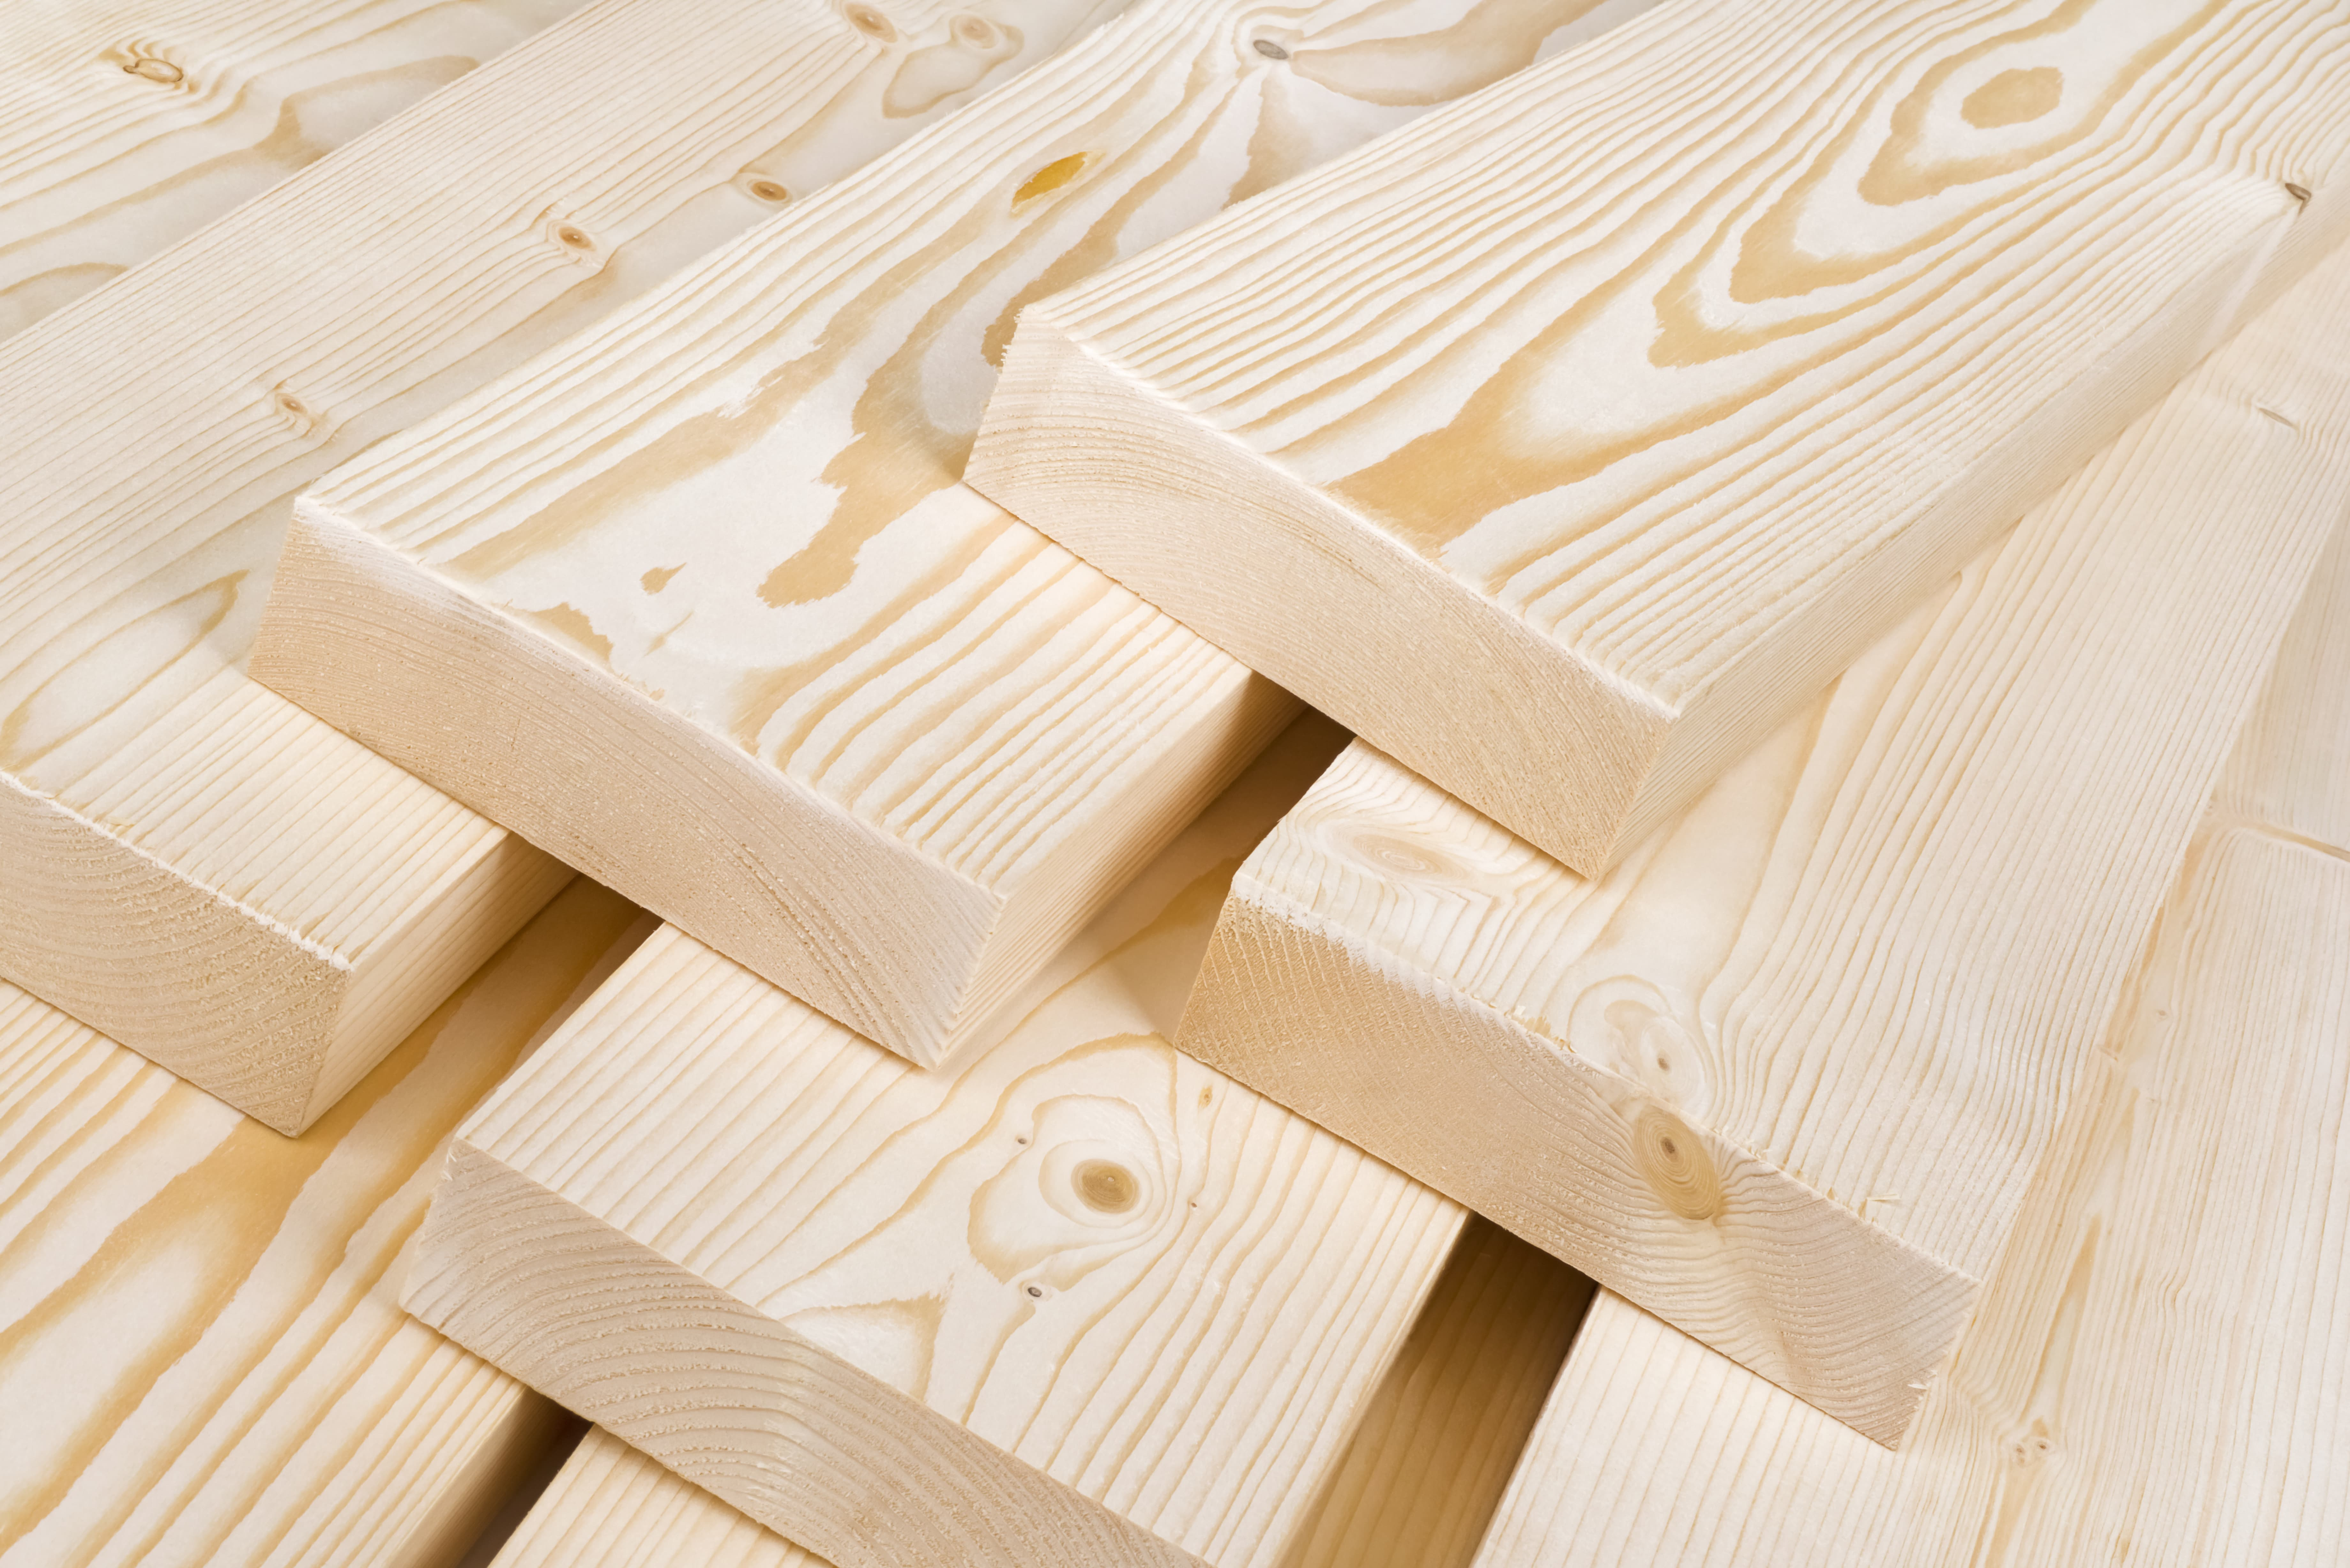 We plan to start trading planed timber